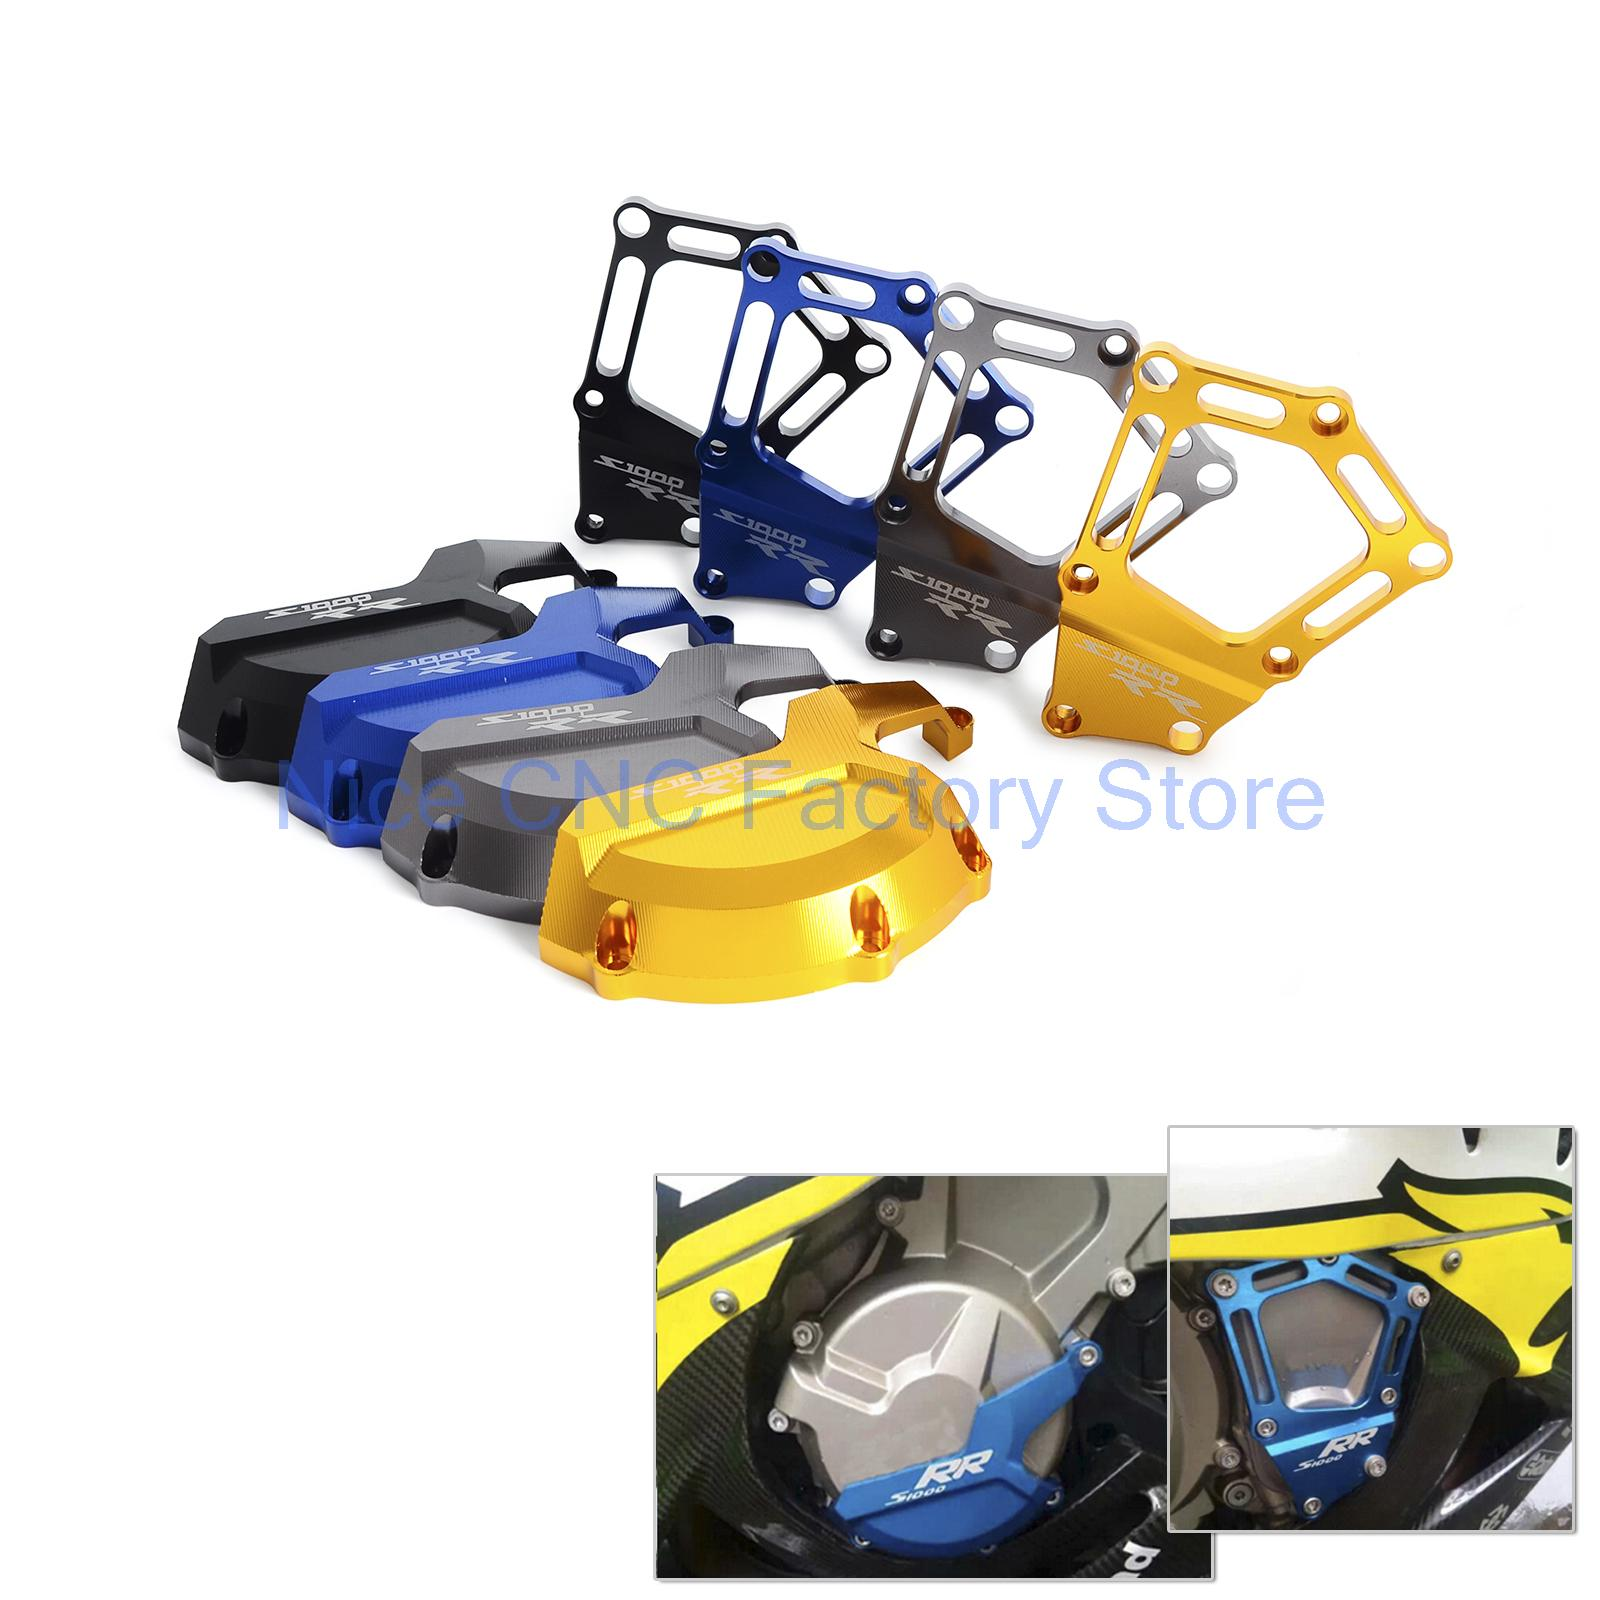 Engine Stator Starter Cover Frame Slider Protector For BMW S1000R 2014-2017  S1000RR 2010-2017  HP4 2012-2014  S1000XR 2015-2017 new motorcycle aluminum frame slider blue engine stator starter cover slider protector for bmw s1000rr hp4 k42 k46 2009 2015